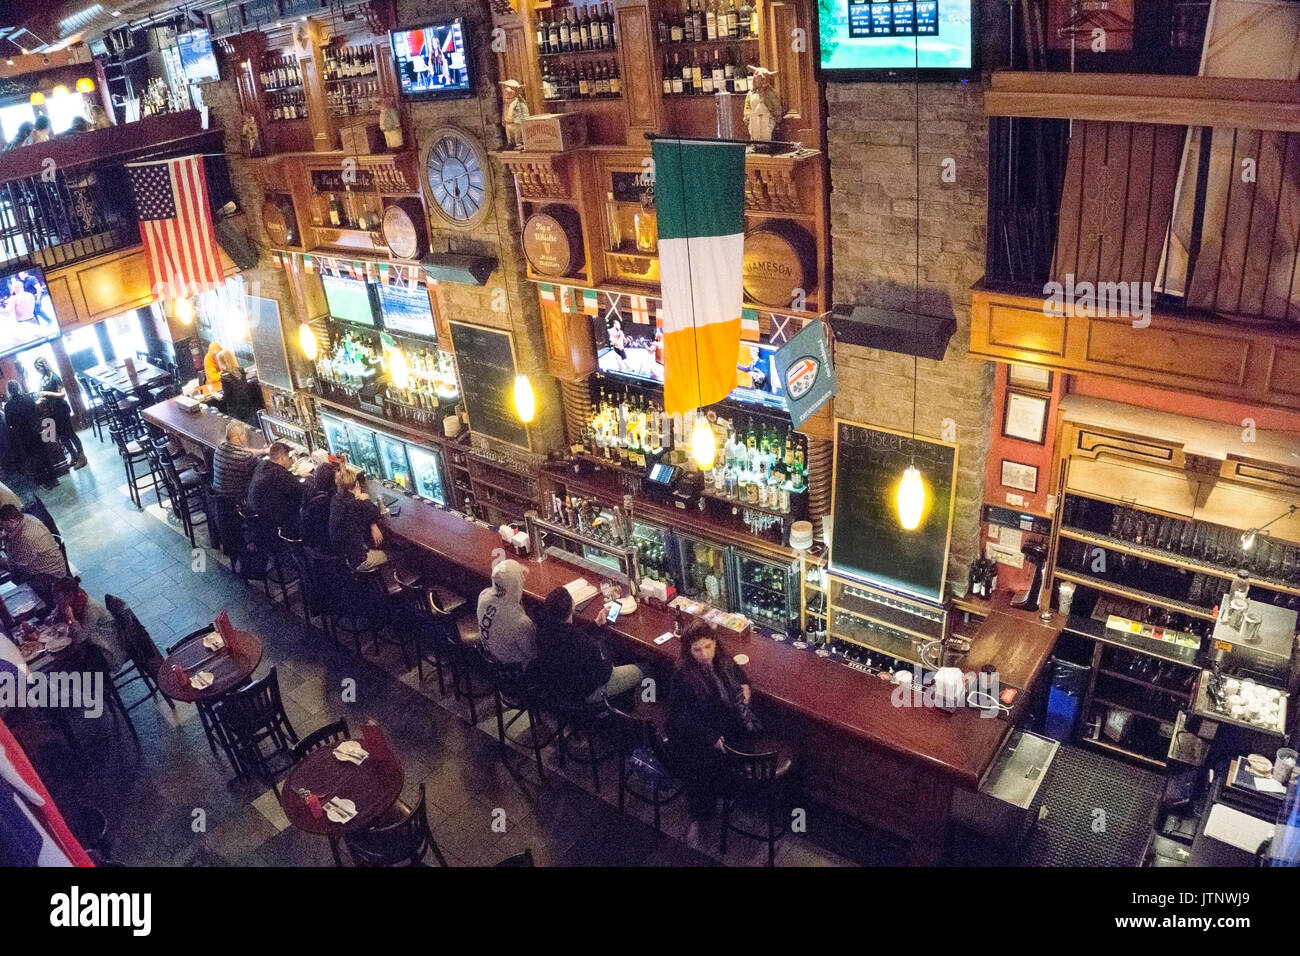 spacious old Irish pub on W 36th street, decor unchanged as Garment district gentrified to admit offices & residential towers among low manufacturing - Stock Image